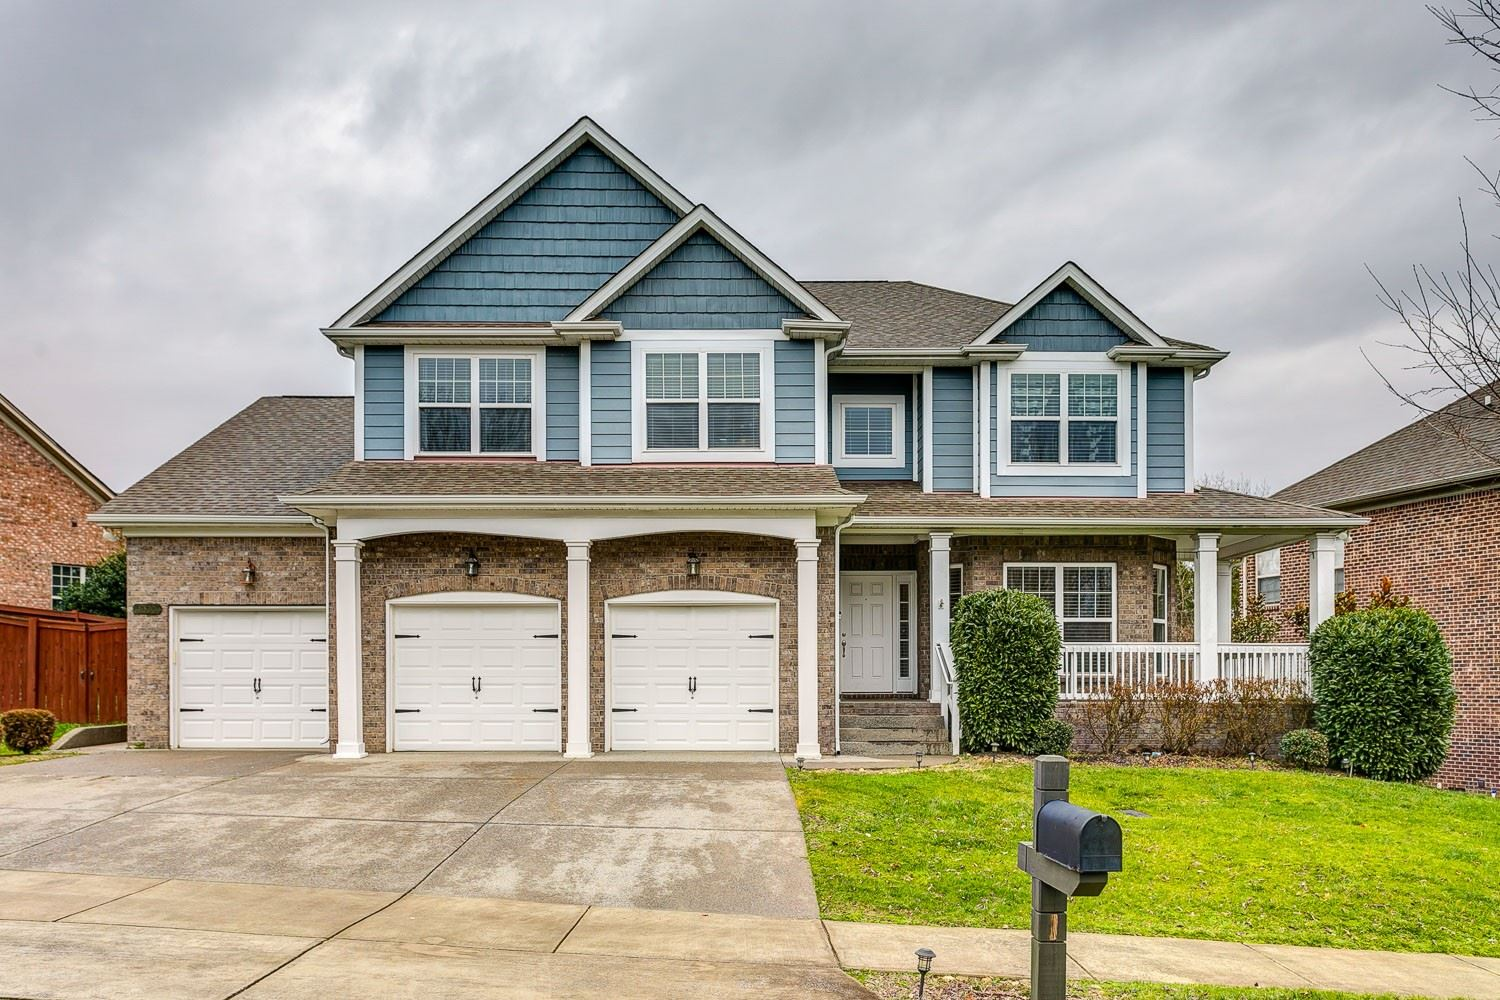 Photo of 8320 Parkfield Dr, Nolensville, TN 37135 (MLS # 2135888)